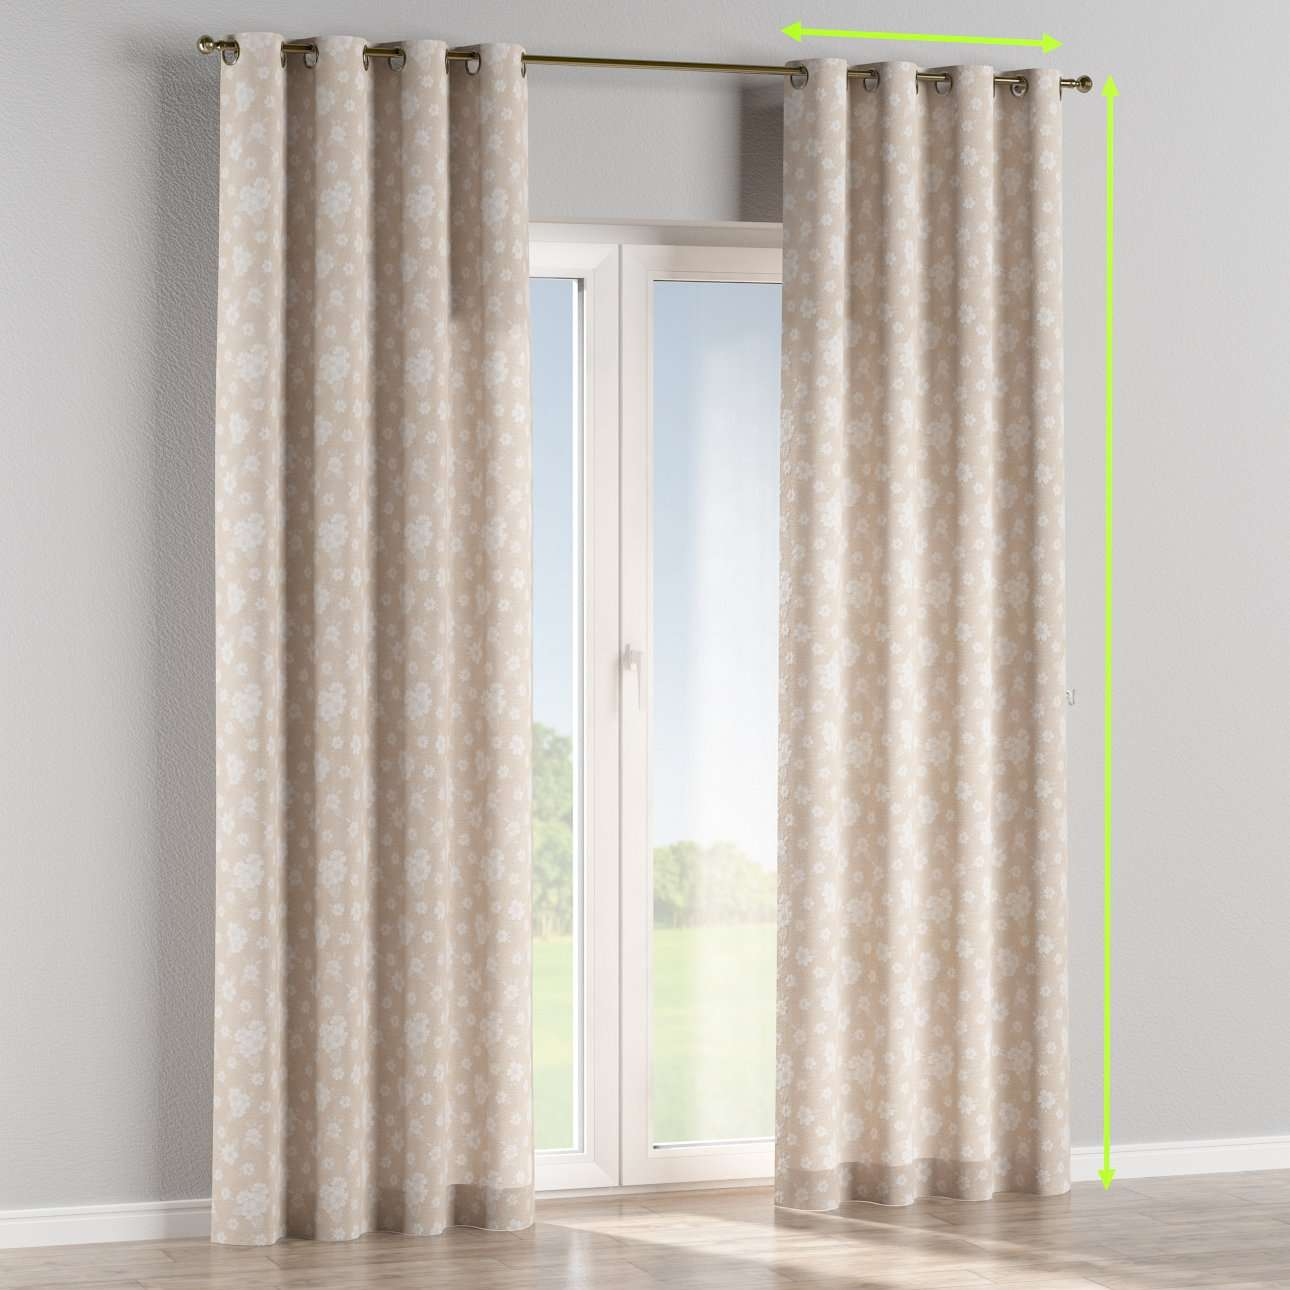 Eyelet lined curtains in collection Rustica, fabric: 138-26